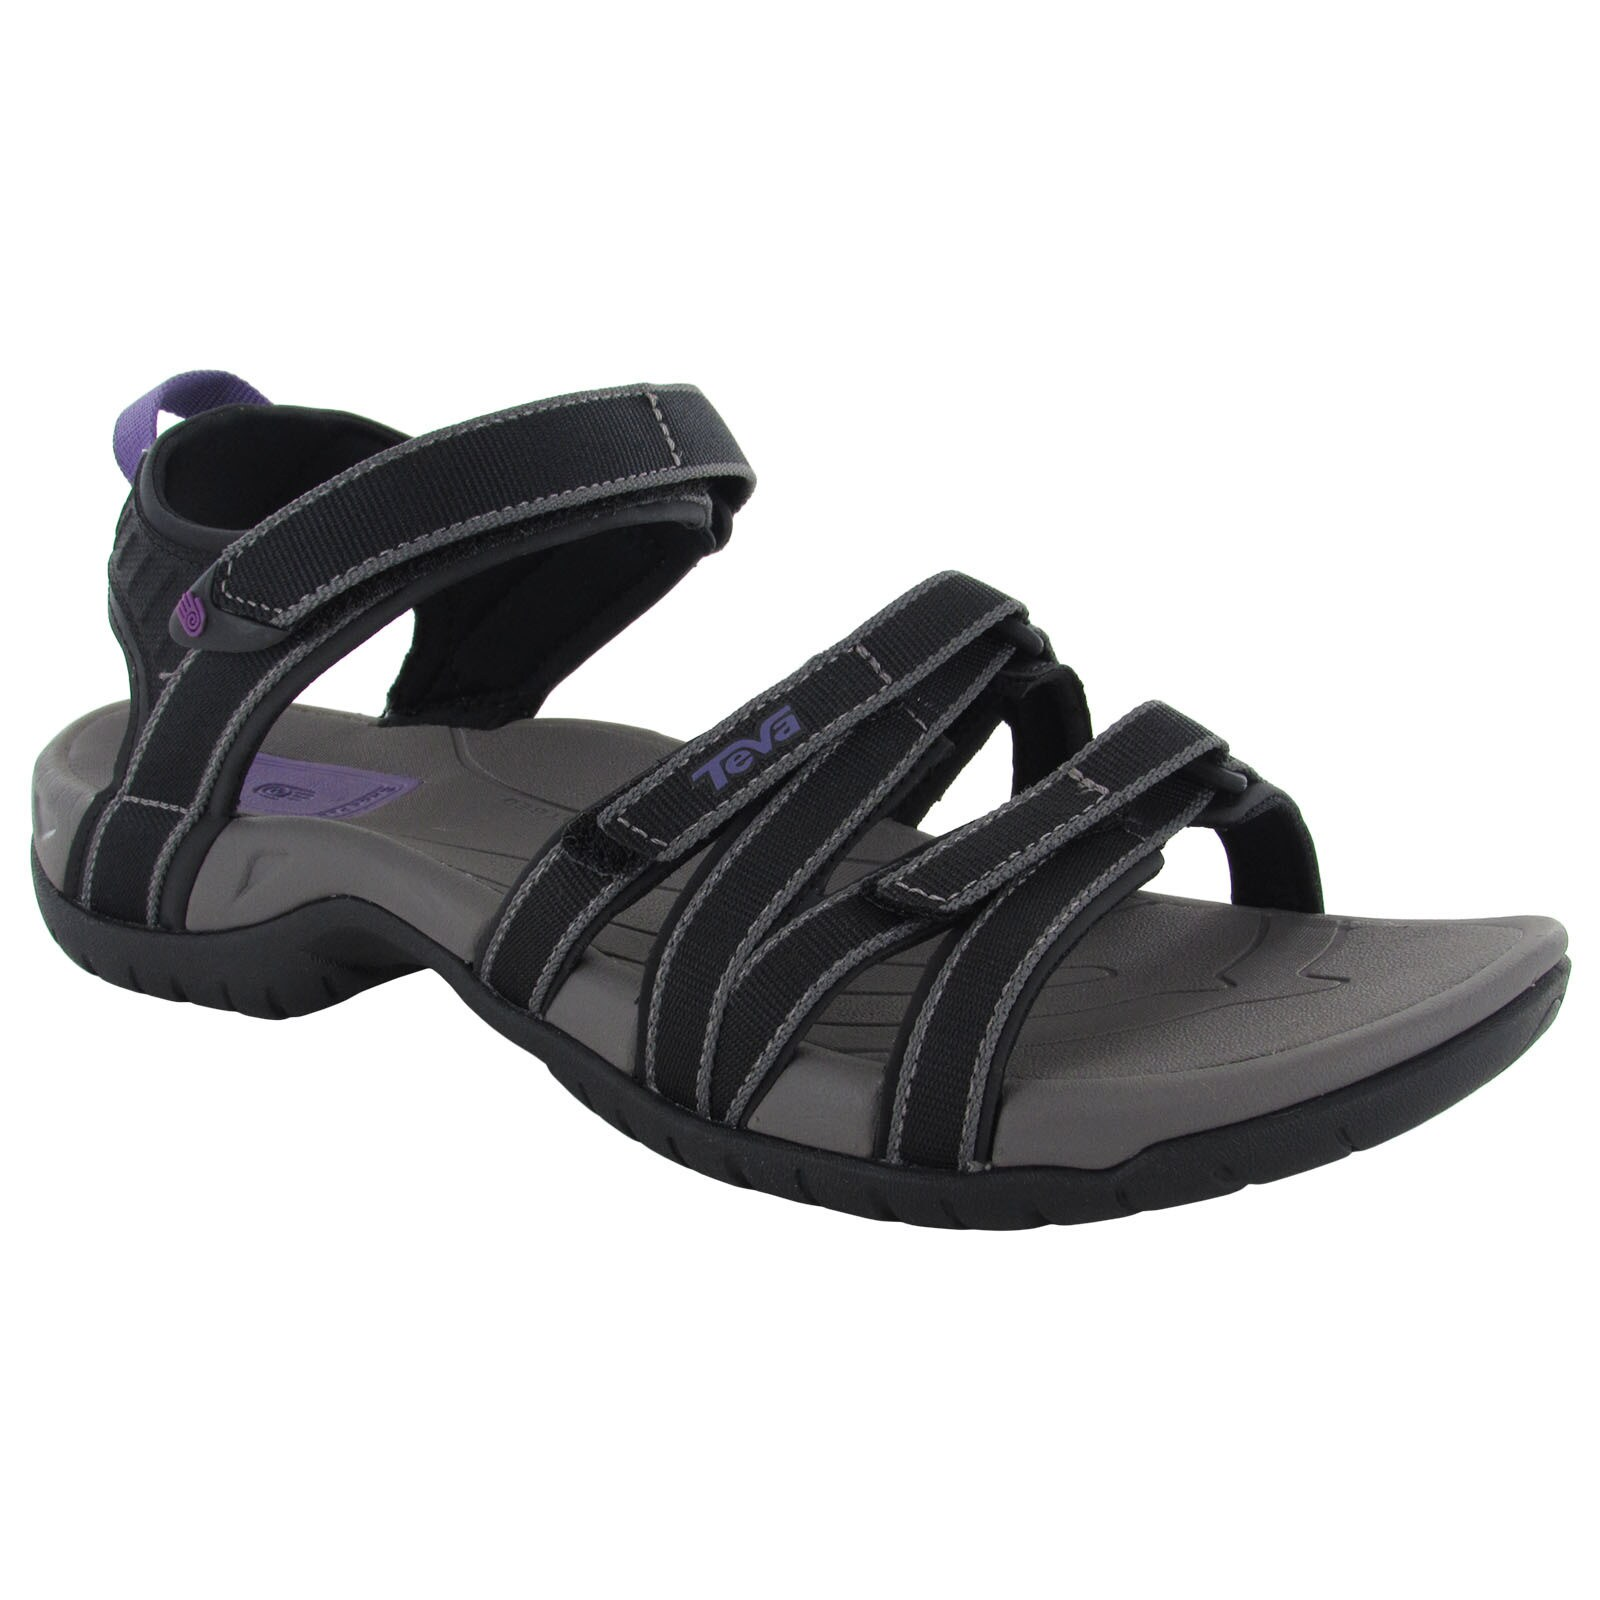 58c4401abd57 Shop Teva Womens Tirra Multi Purpose Athletic Sandals - Free Shipping On  Orders Over  45 - Overstock - 19808327